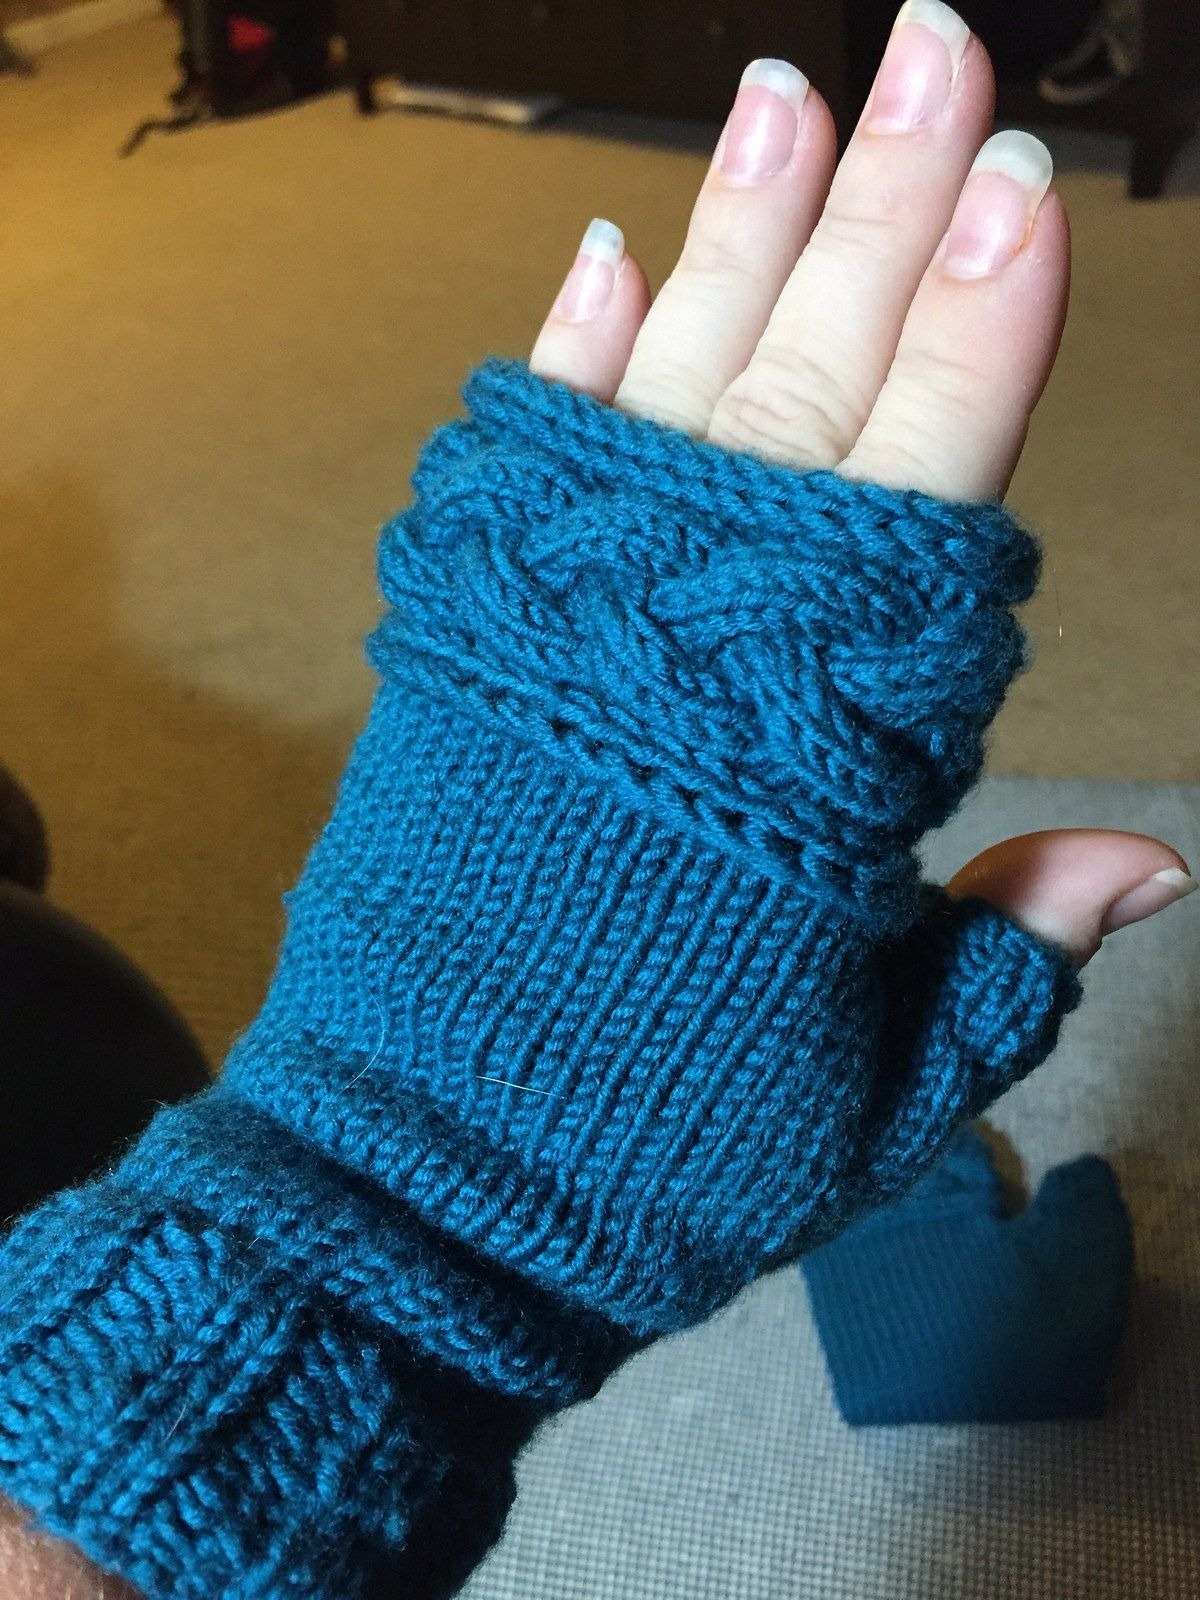 Twisty mitts knitting patterns knitting patterns outlander free knitting pattern for mistress beauchamps mitts jill bickers fingerless mitts with cable trim bankloansurffo Images